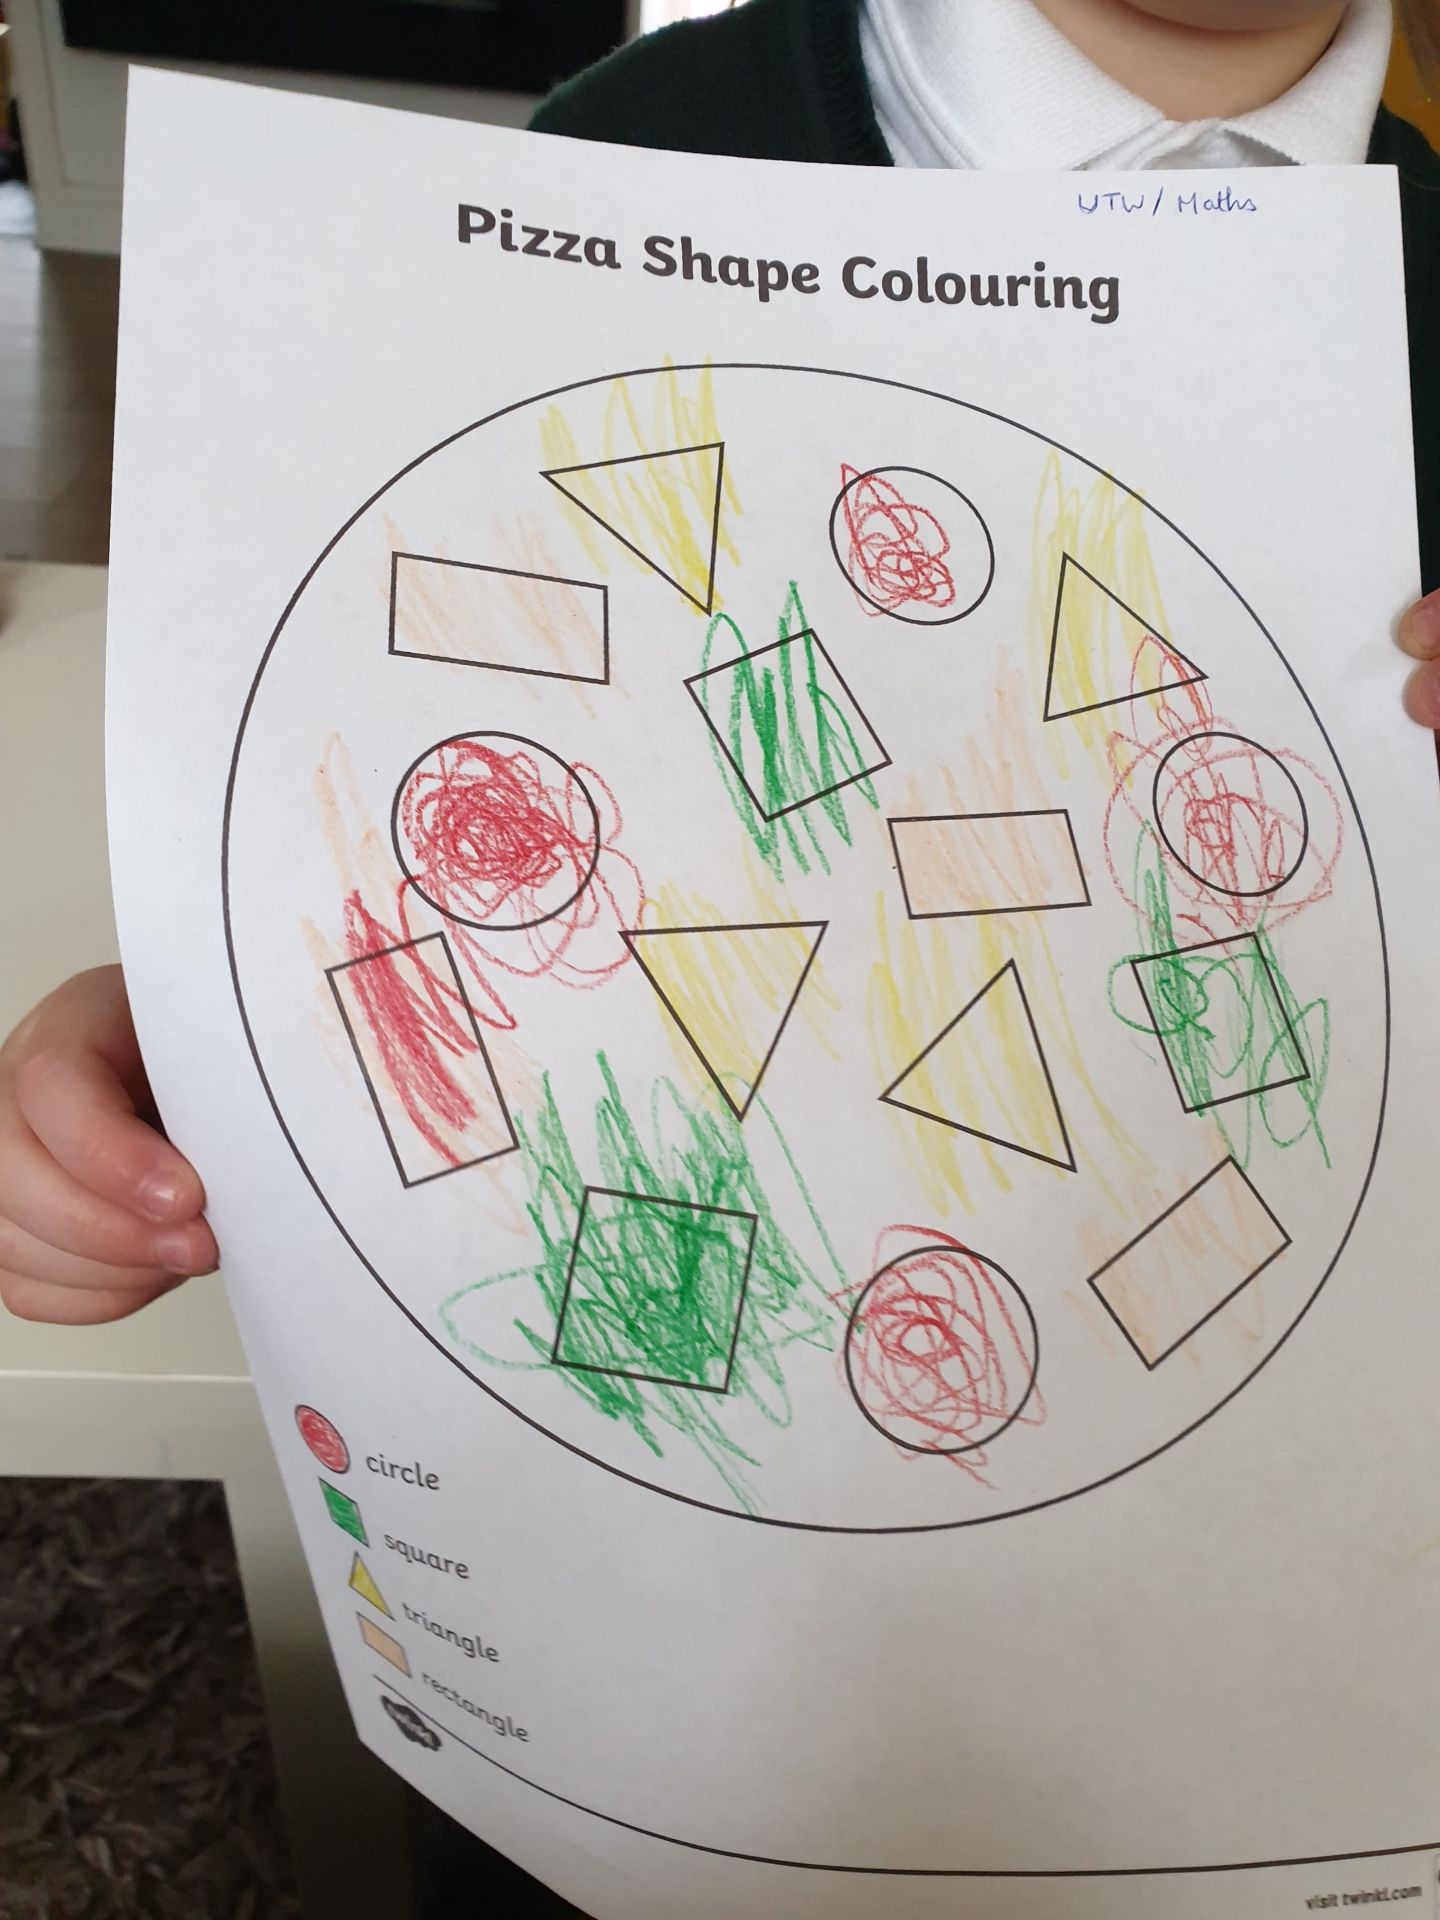 Pizza shape colouring worksheet